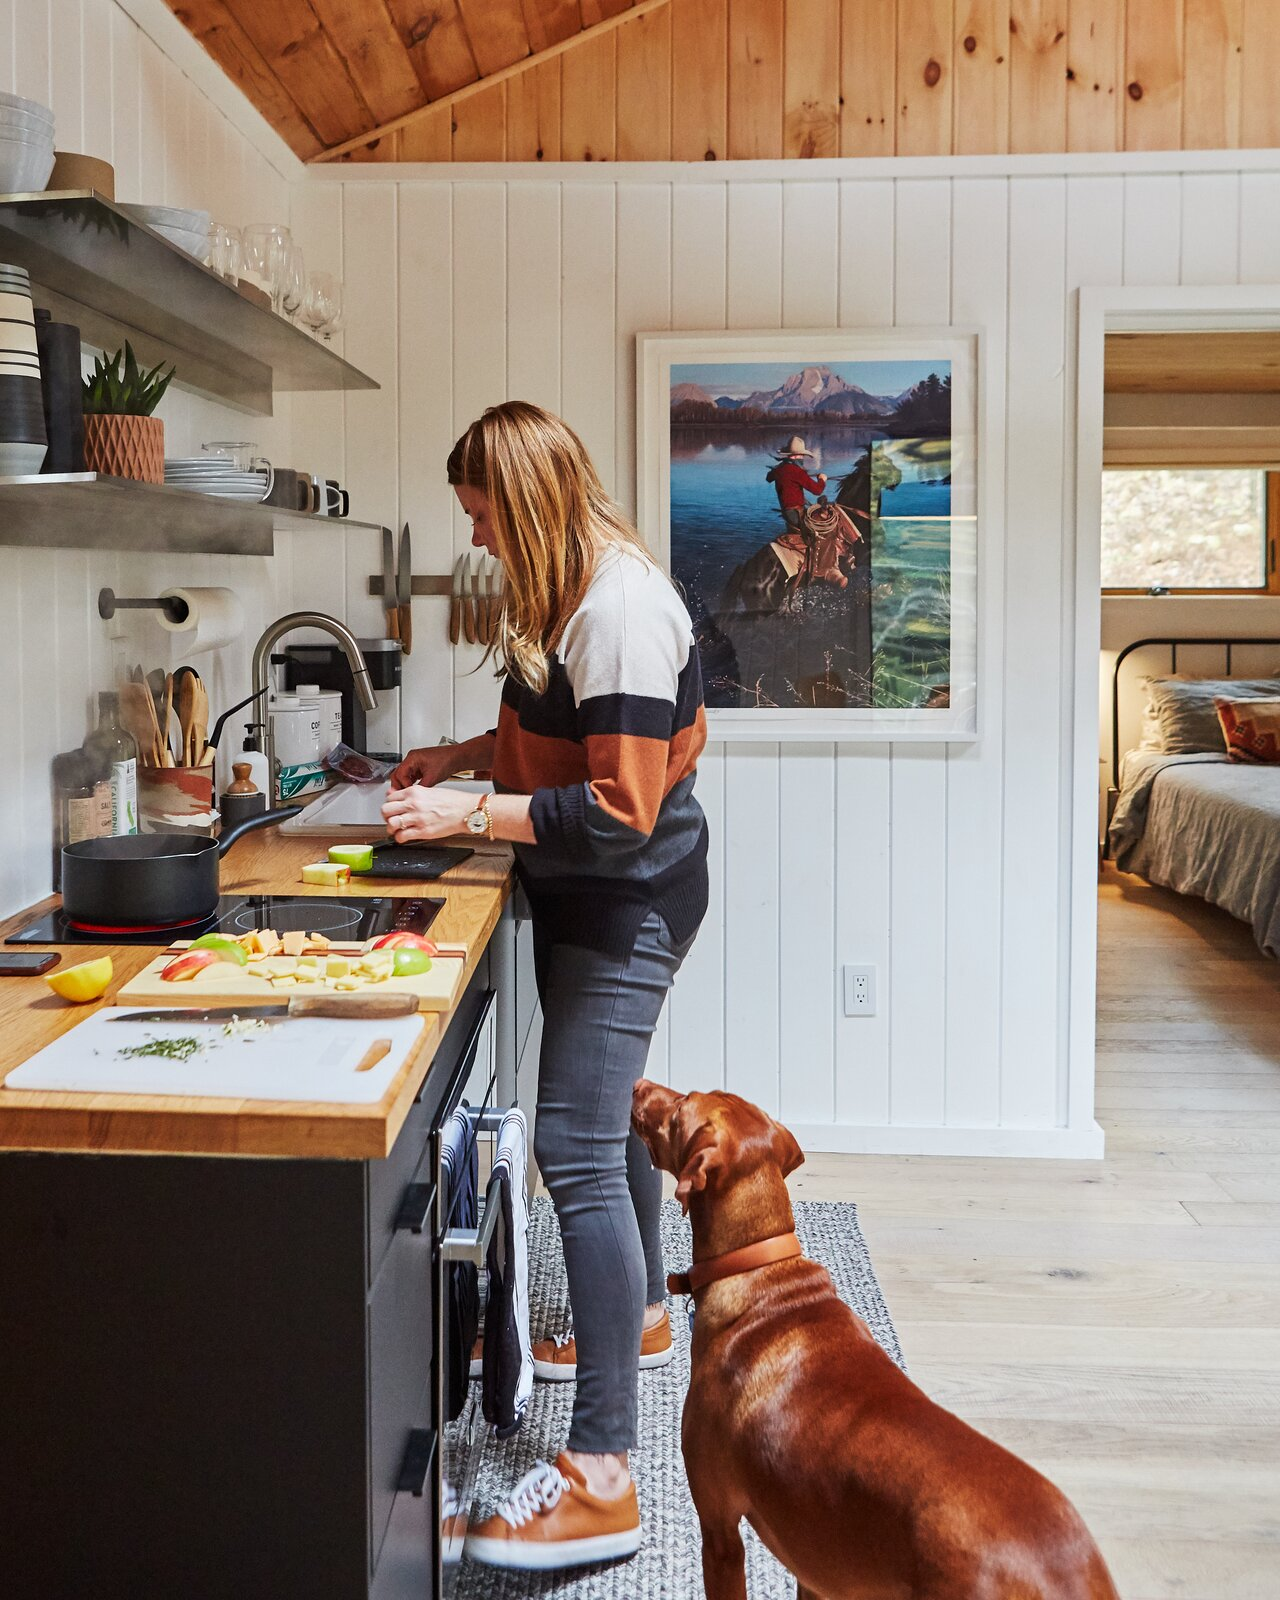 Highland Bungalow by Lauren Wesley Spear kitchen with open steel shelves and wood countertop